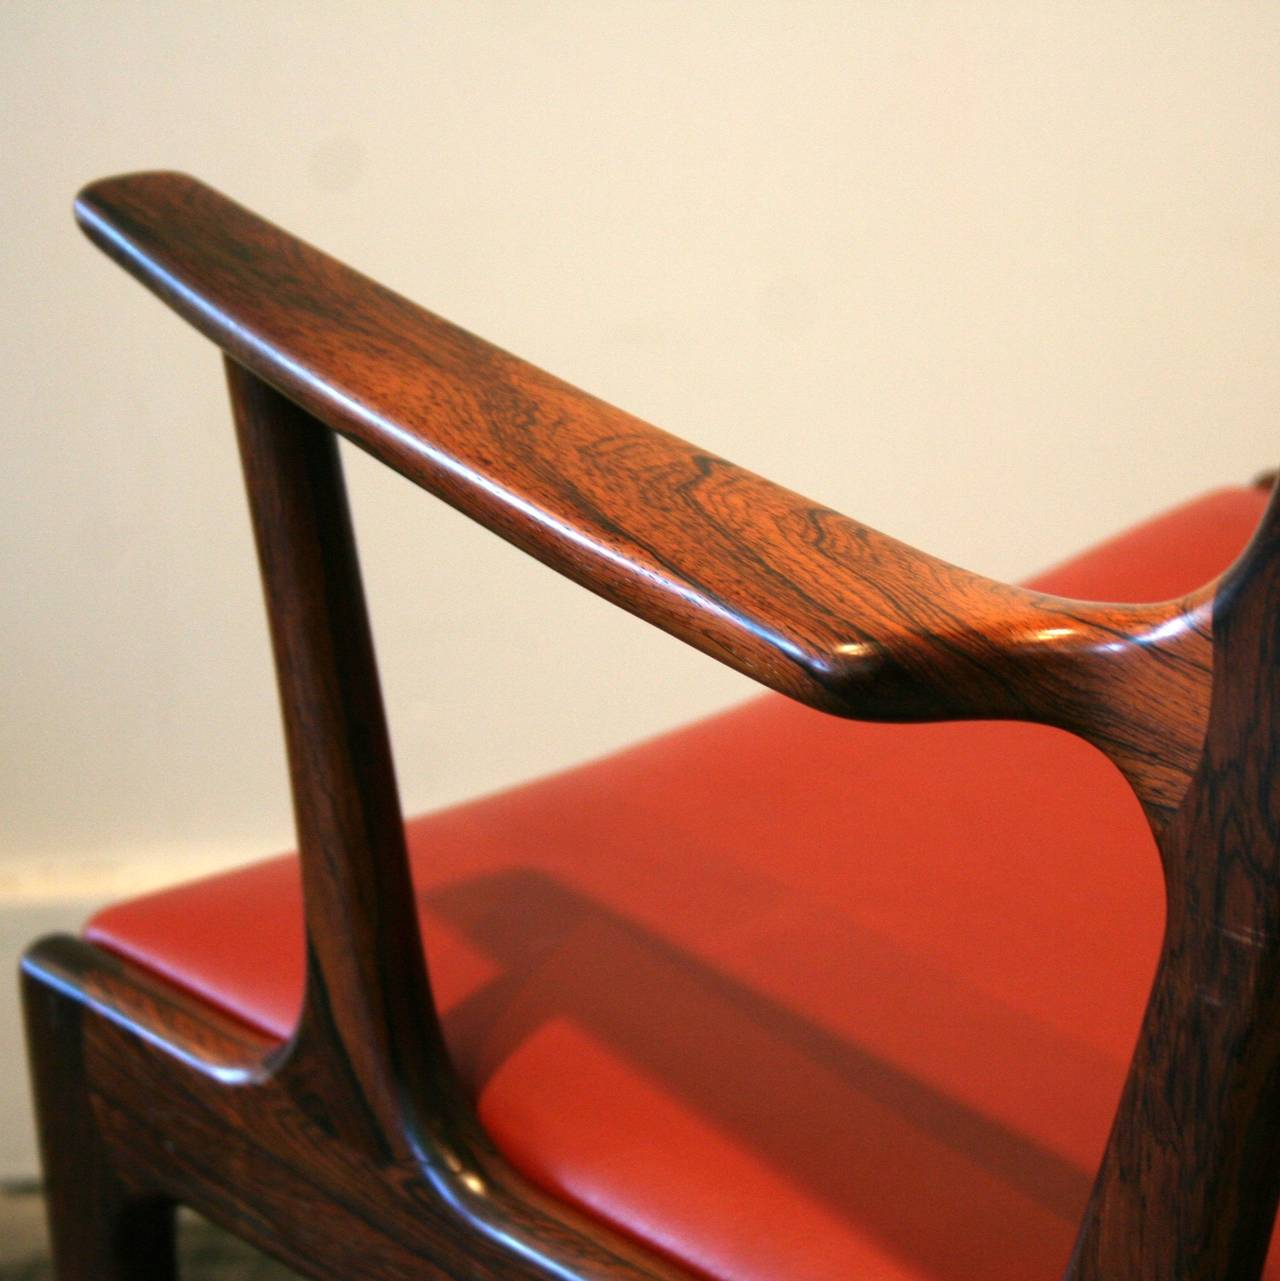 Sculpted rosewood danish dining chairs red modern furniture - Vintage Danish Rosewood Tall Back Accent Chair At 1stdibs